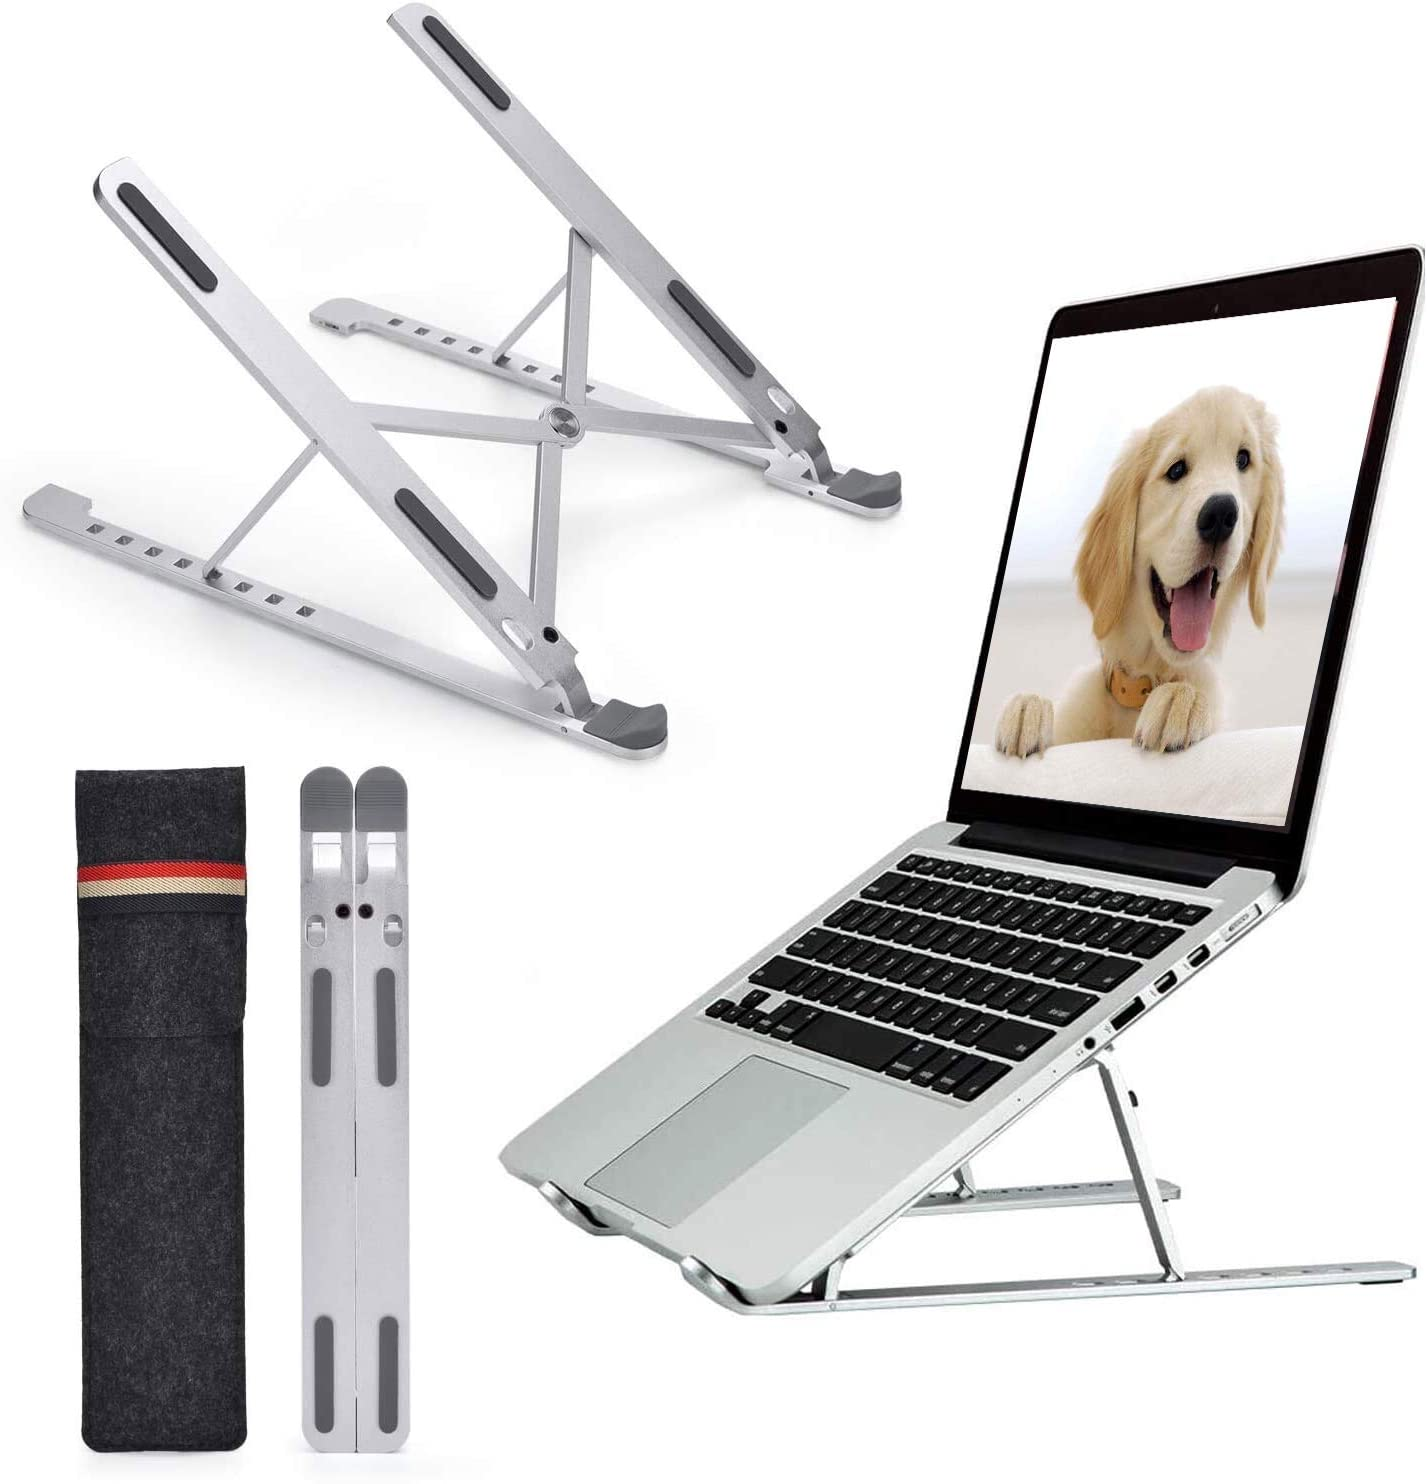 Adjustable Laptop Stand - 8 Levels Height Laptop Stand Universal Aluminum Alloy Portable Ventilated Cooling Stand for Desk Compatible with All Laptops (Up to 17 inch)- Silver